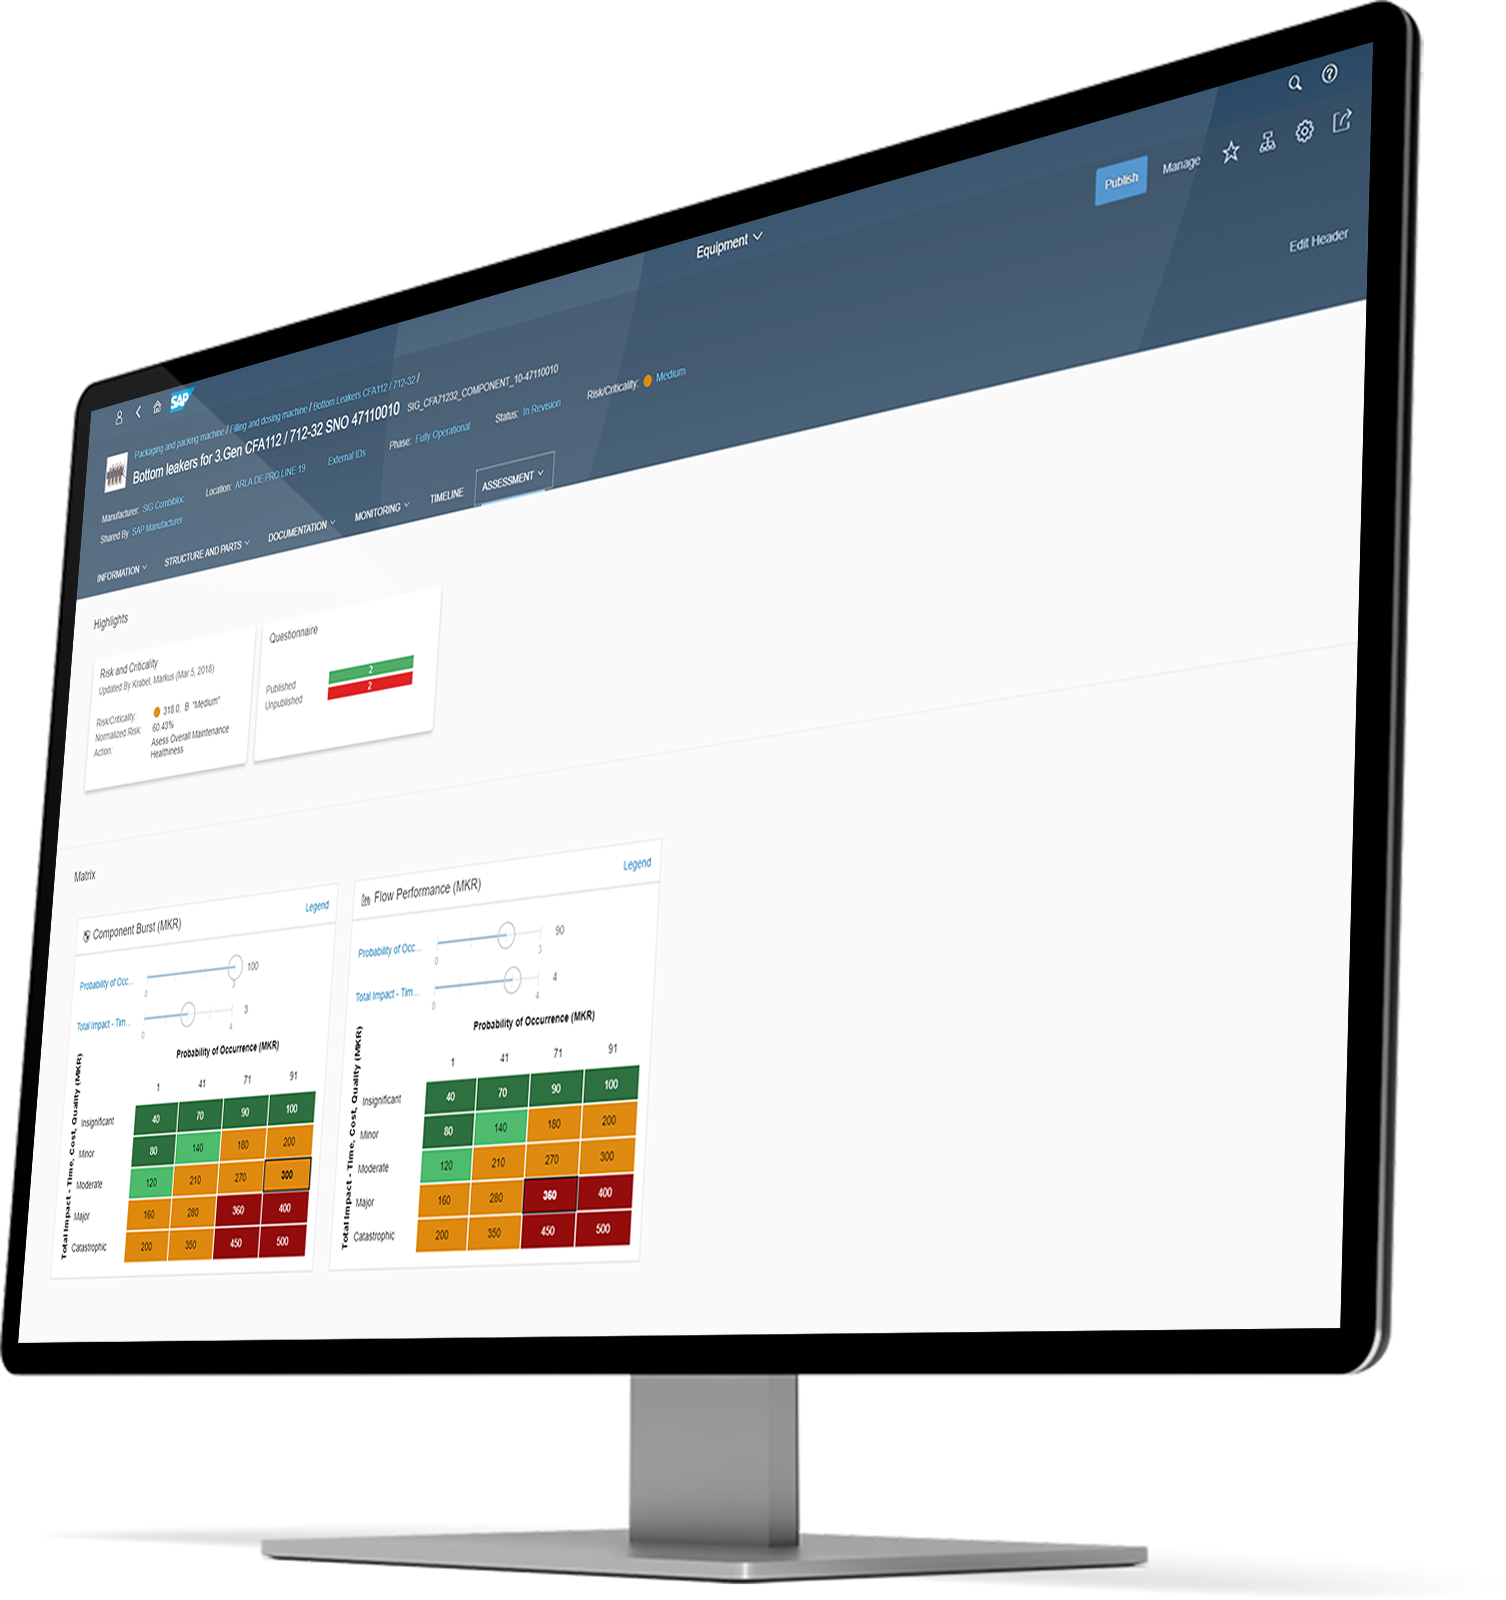 Monitor depicting SAP Asset Strategy and Performance Management interface